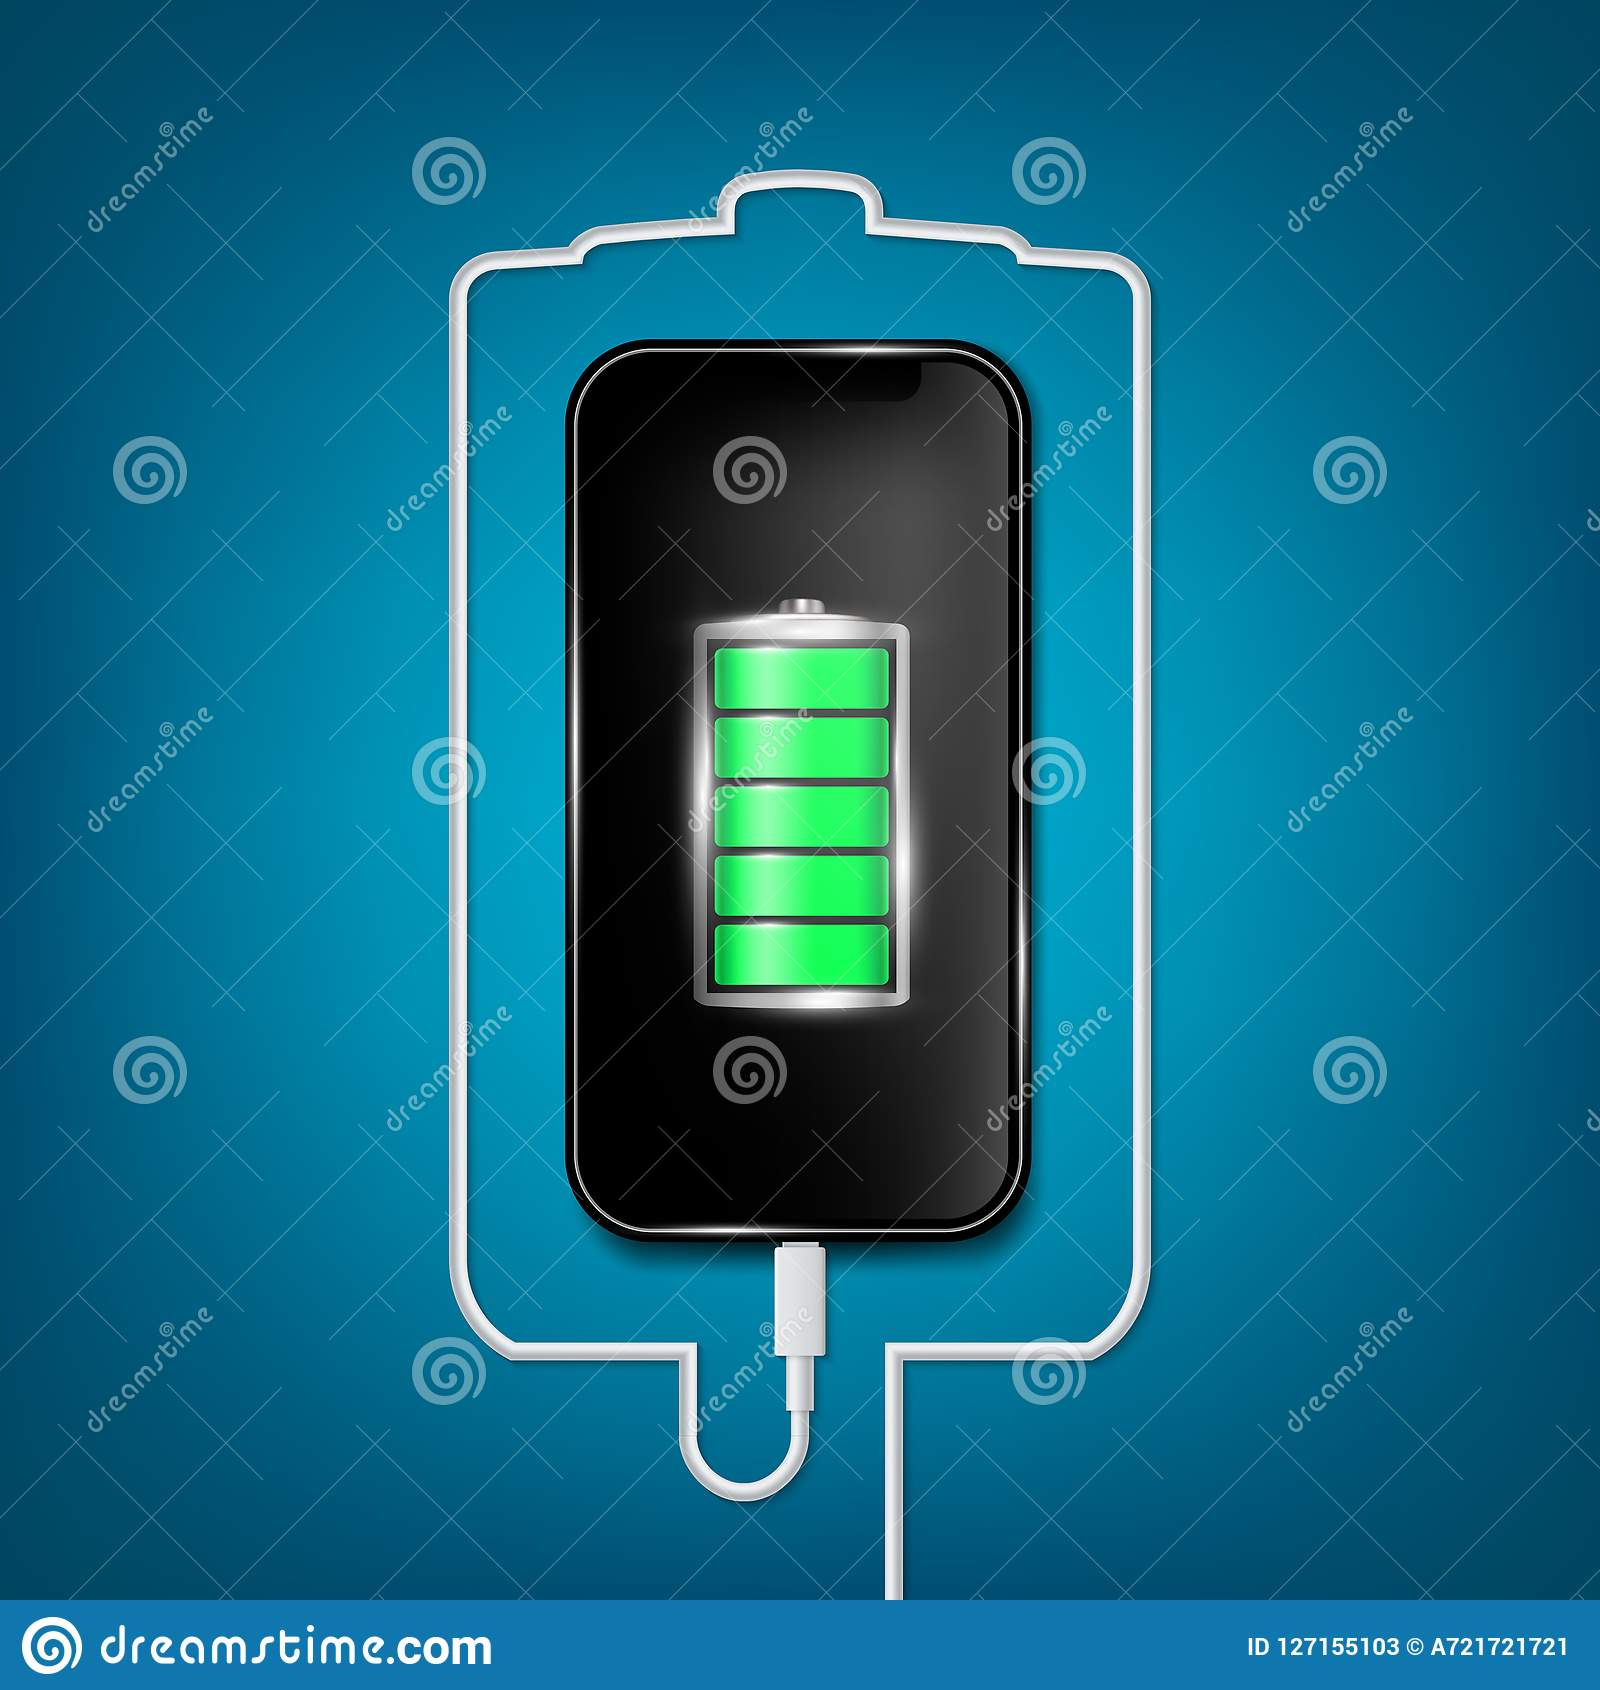 Creative vector illustration of full charged battery smartphone with cellphone usb plugs cable isolated on background